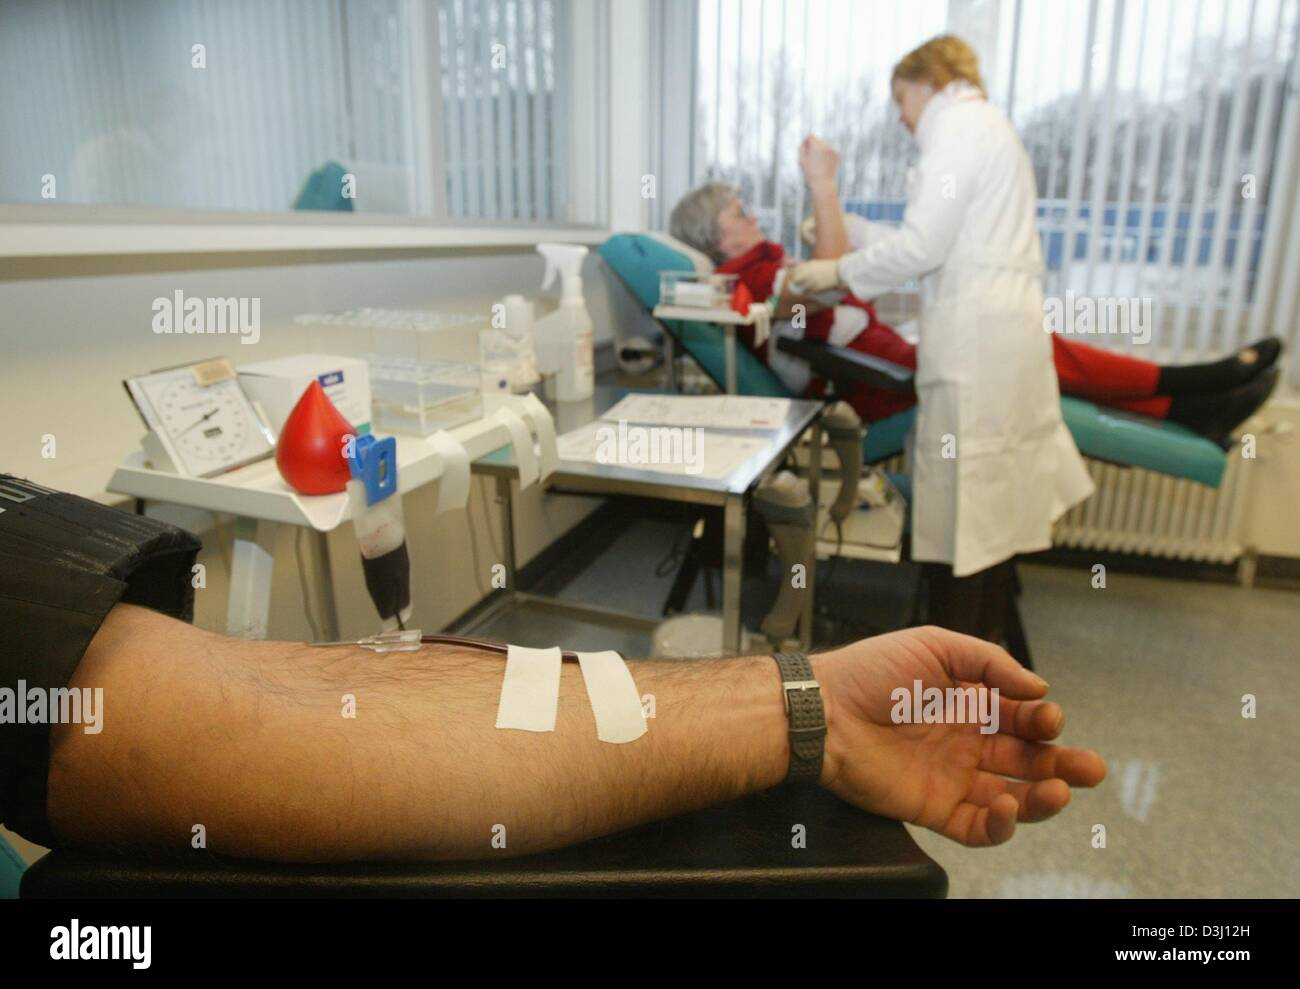 (dpa) - The arm of a blood donor is seen at the blood donation service of the German Red Cross in Hagen, Germany, - Stock Image